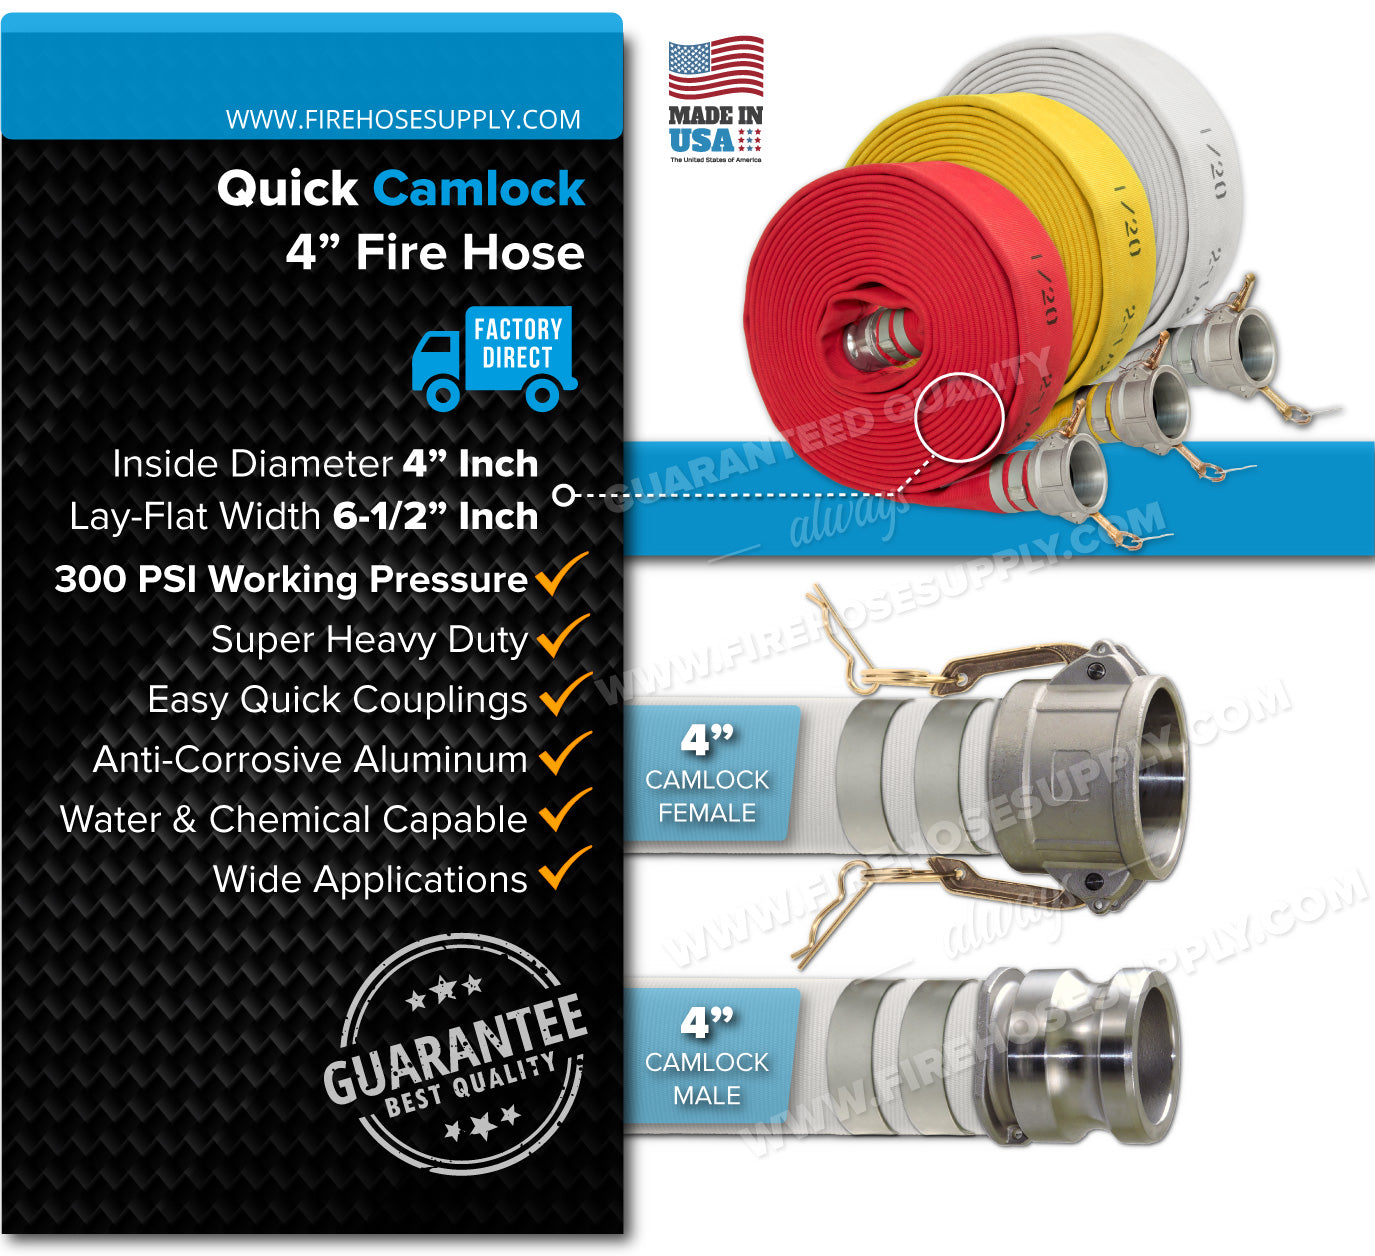 4 Inch Double Jacket Camlock Fire Hose Overview